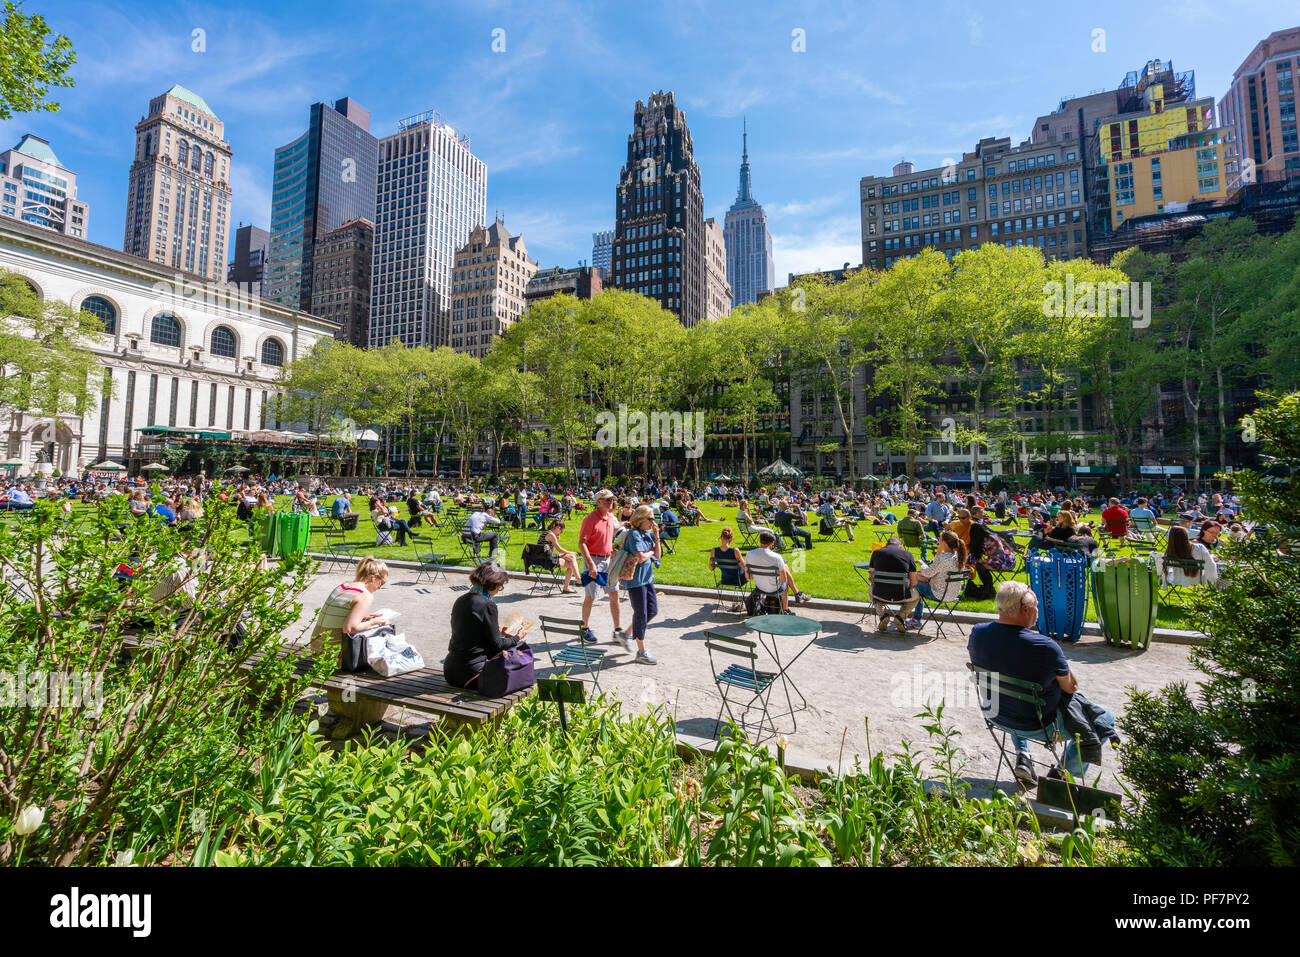 People relaxing at Bryant Park in Midtown Manhattan - Stock Image